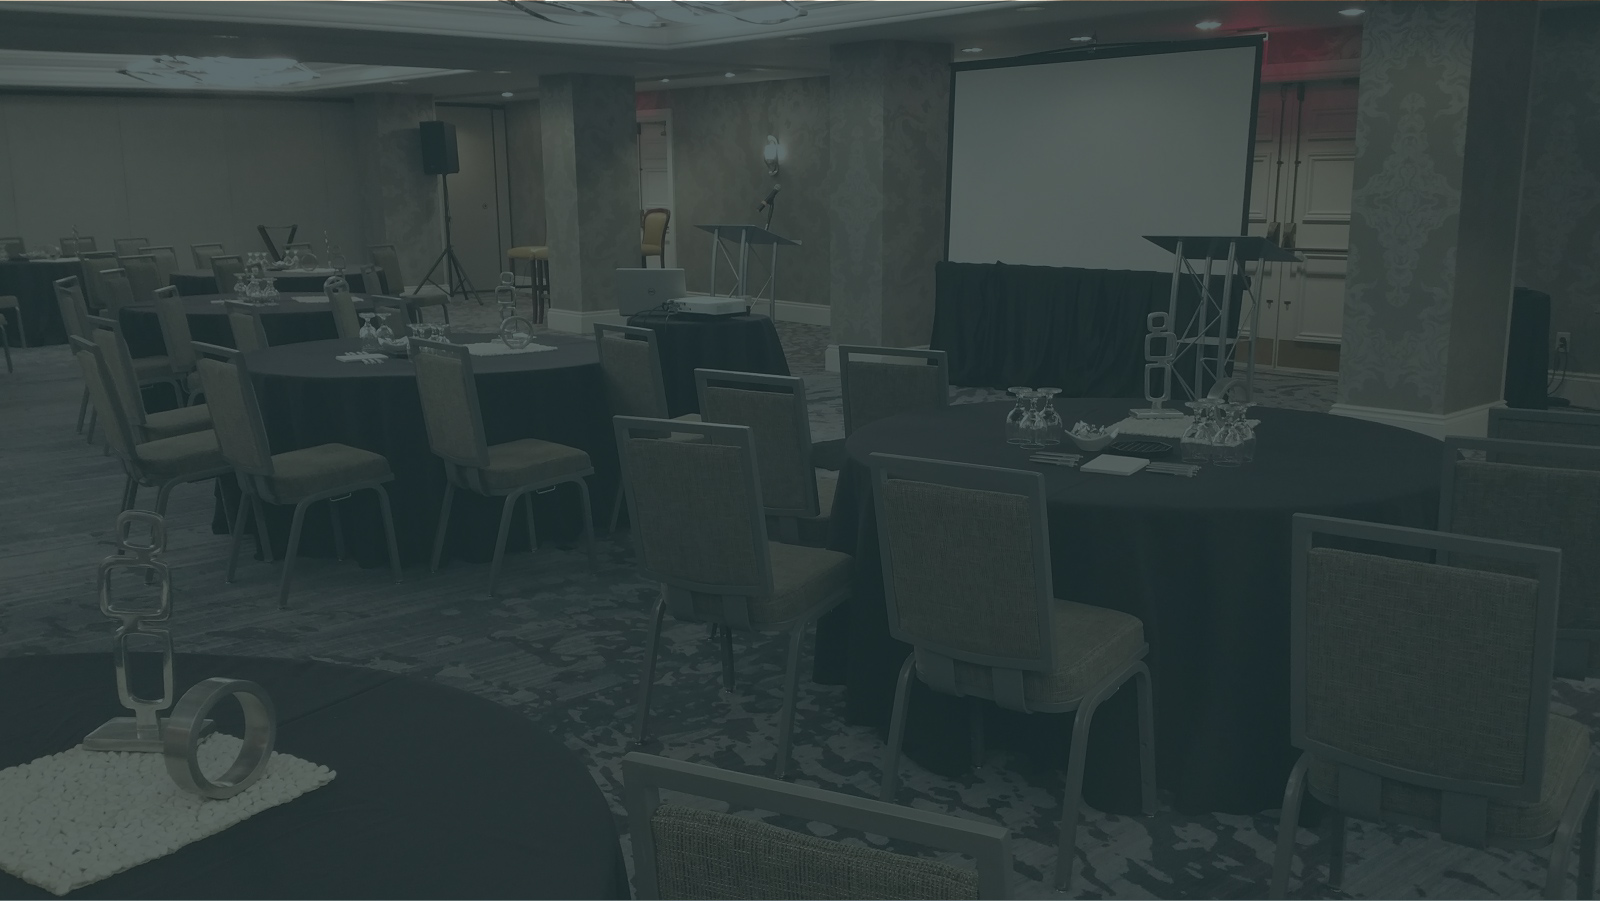 COMPETITIVE PRICING - If your event is at a hotel, conference center, banquet hall or any event venue, don't pay their outrageous